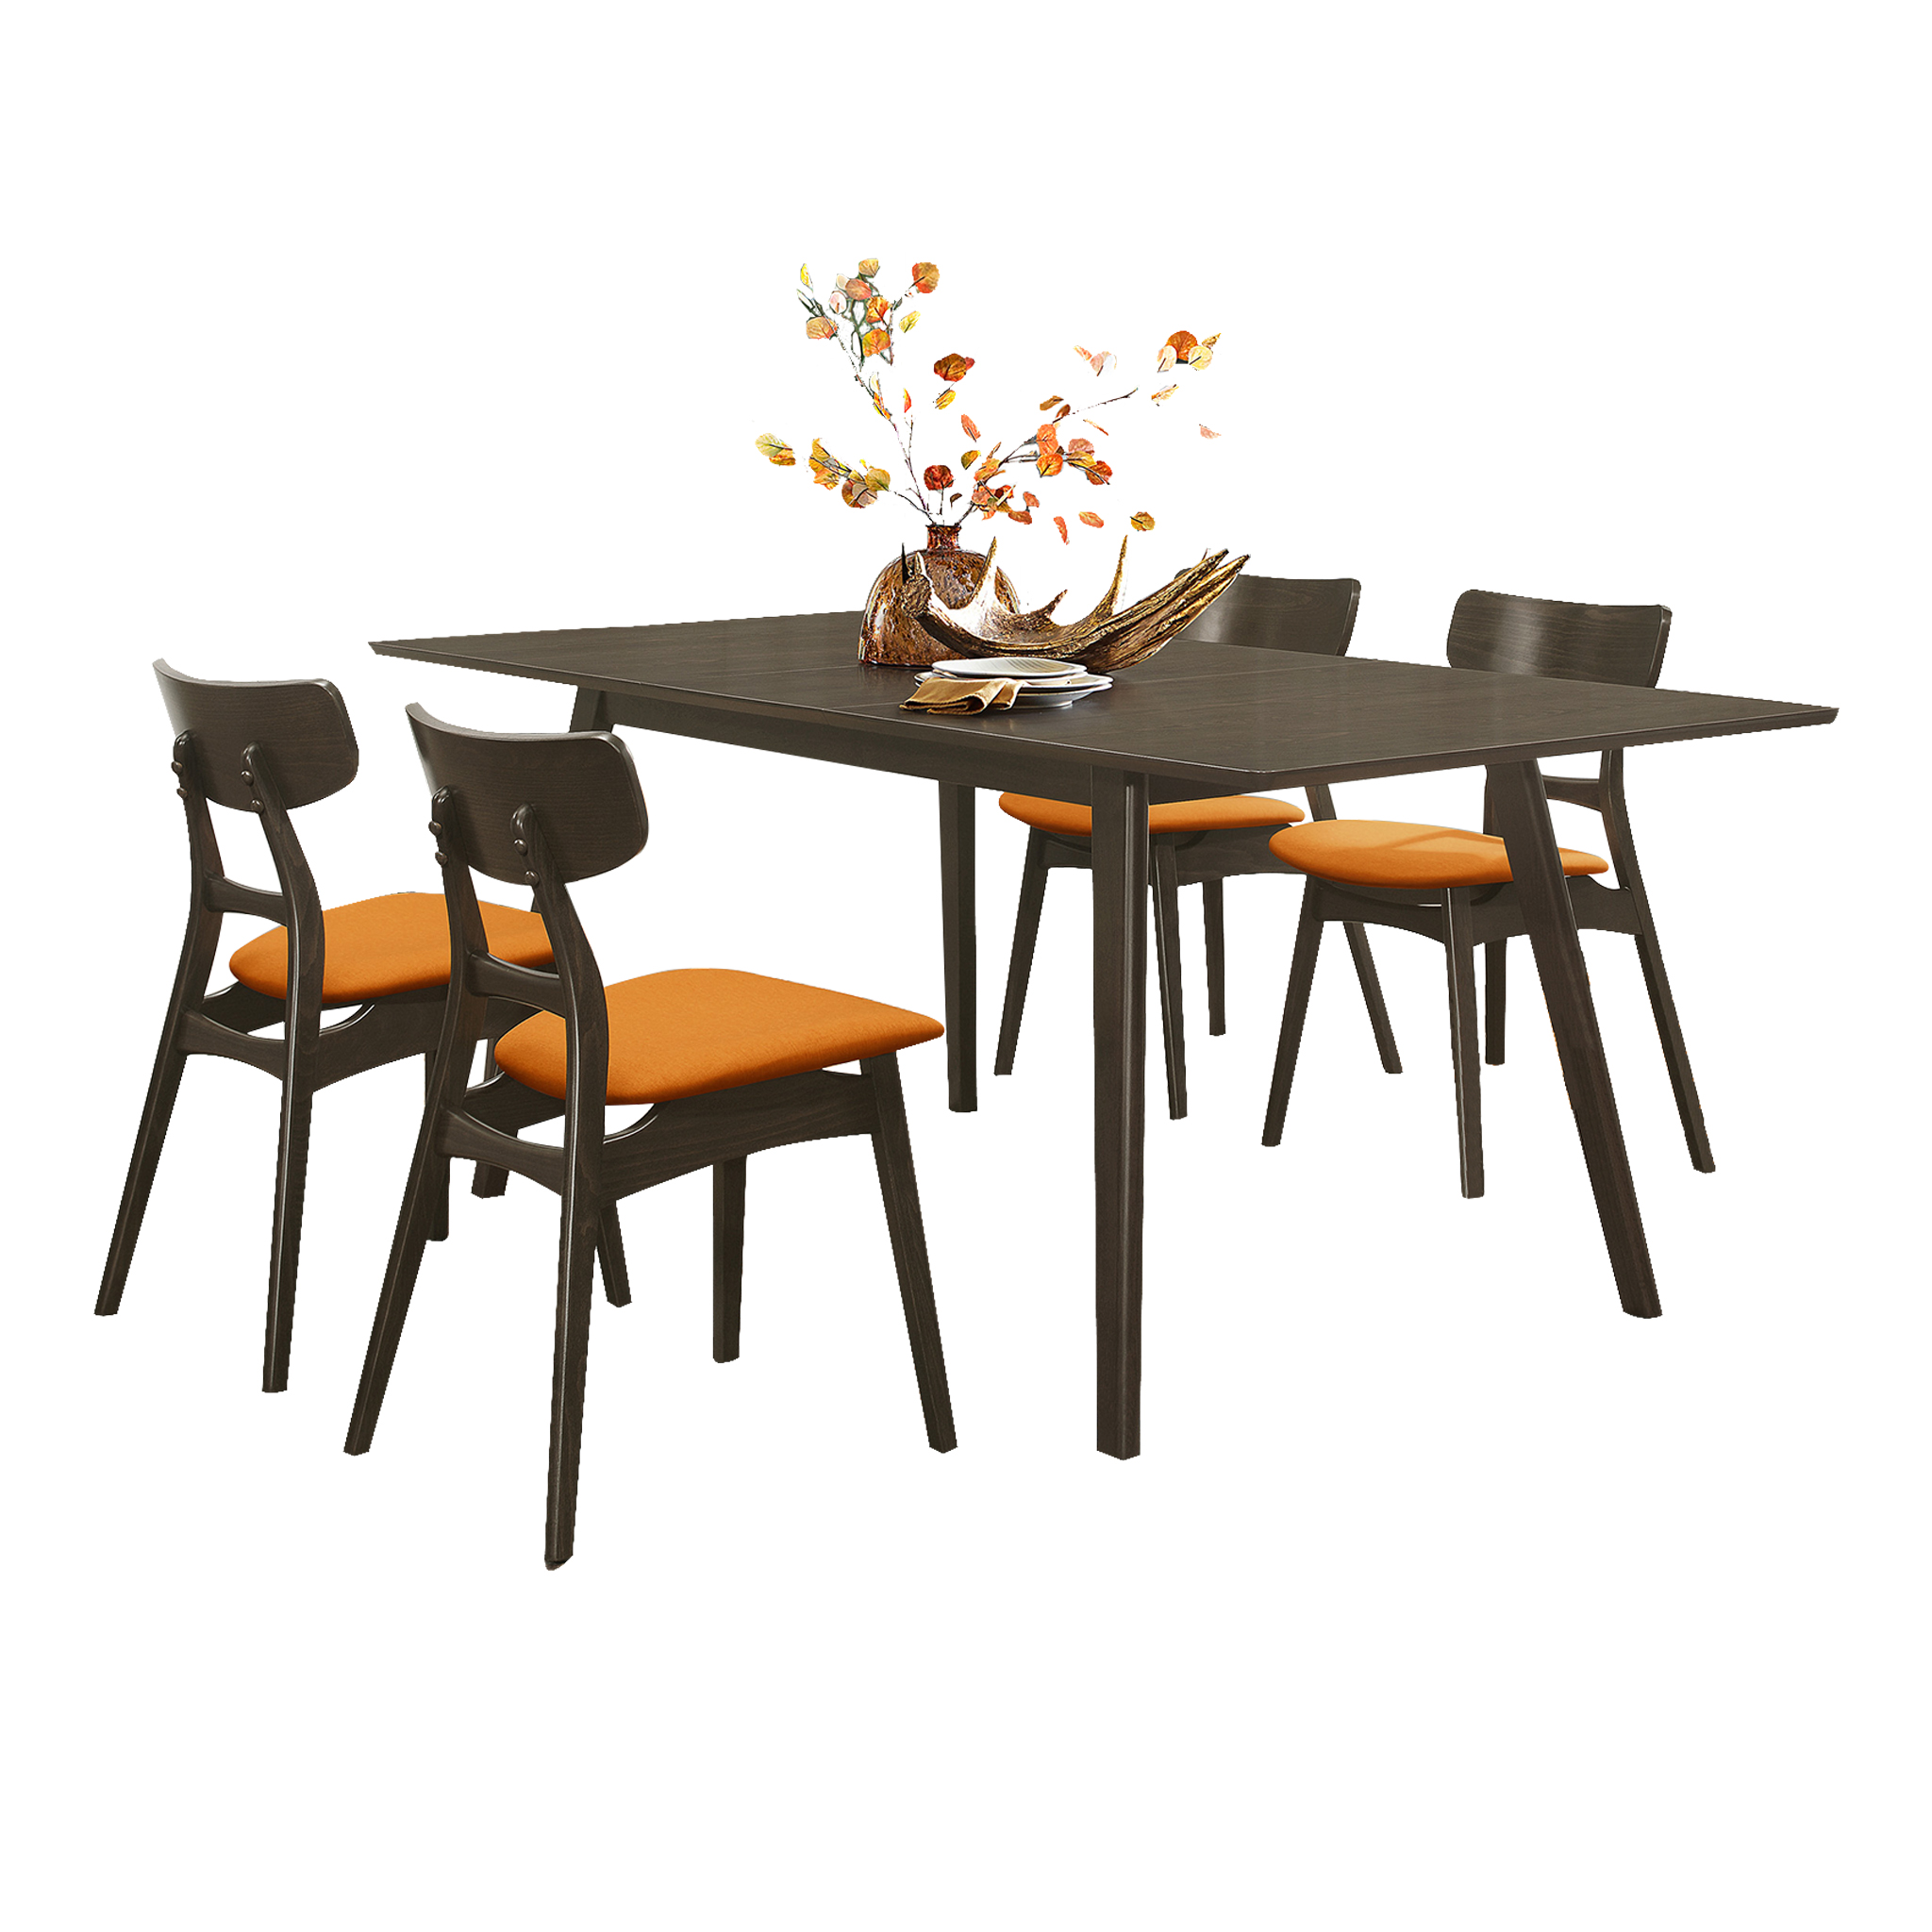 Tannar 5-Piece Dining set, Orange color (1 table + 4 Side chairs)